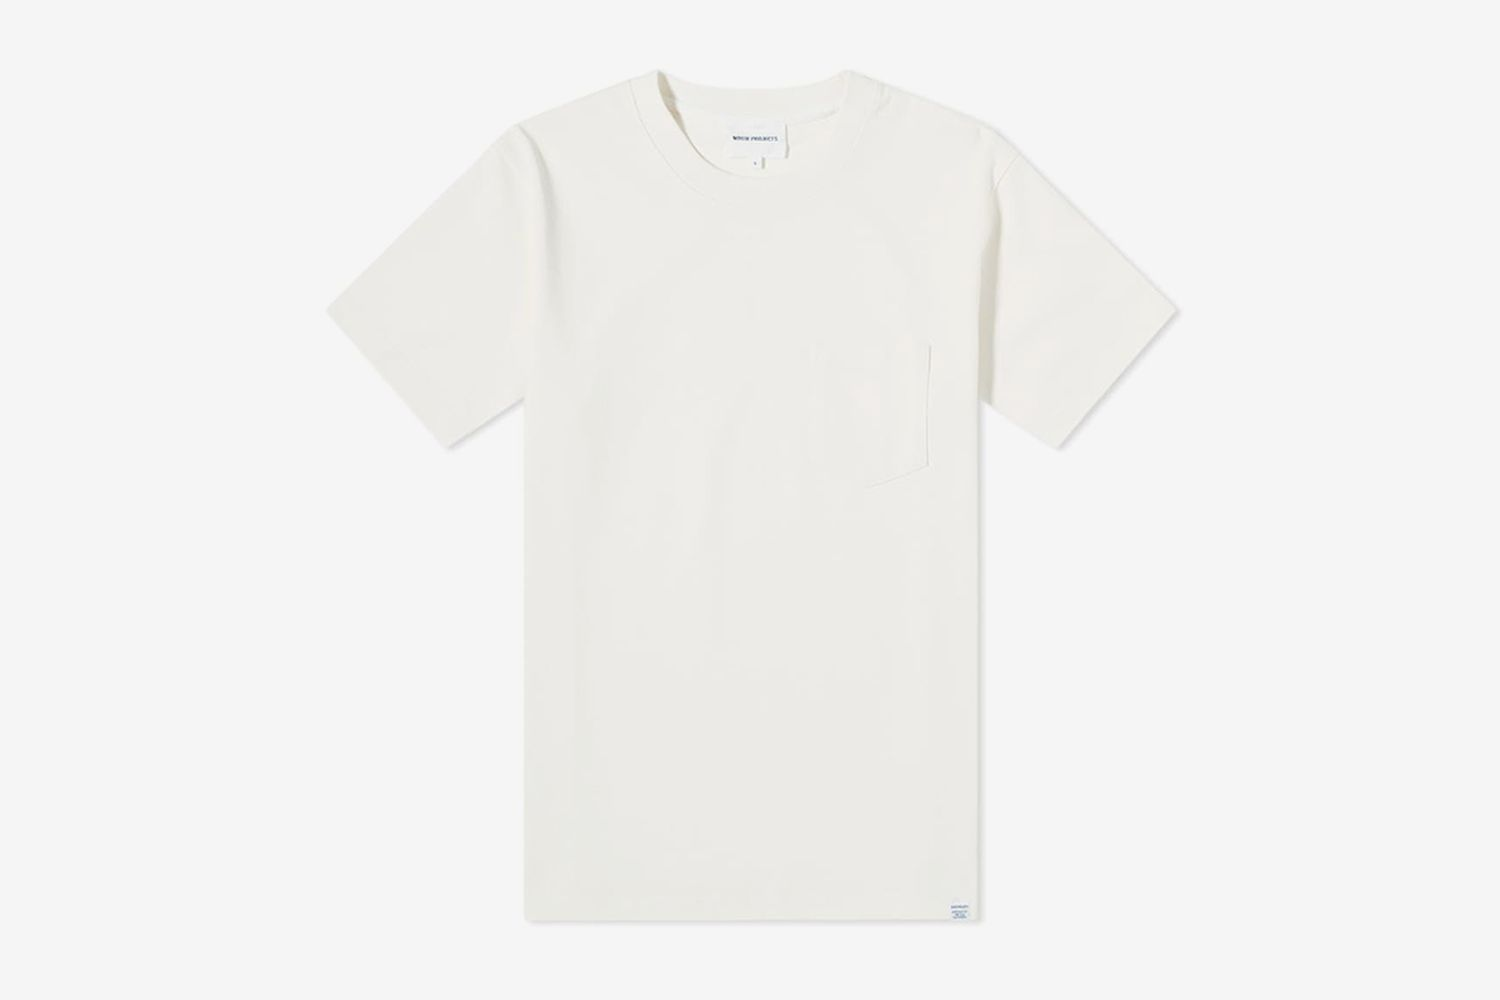 Johannes Pocket Tee